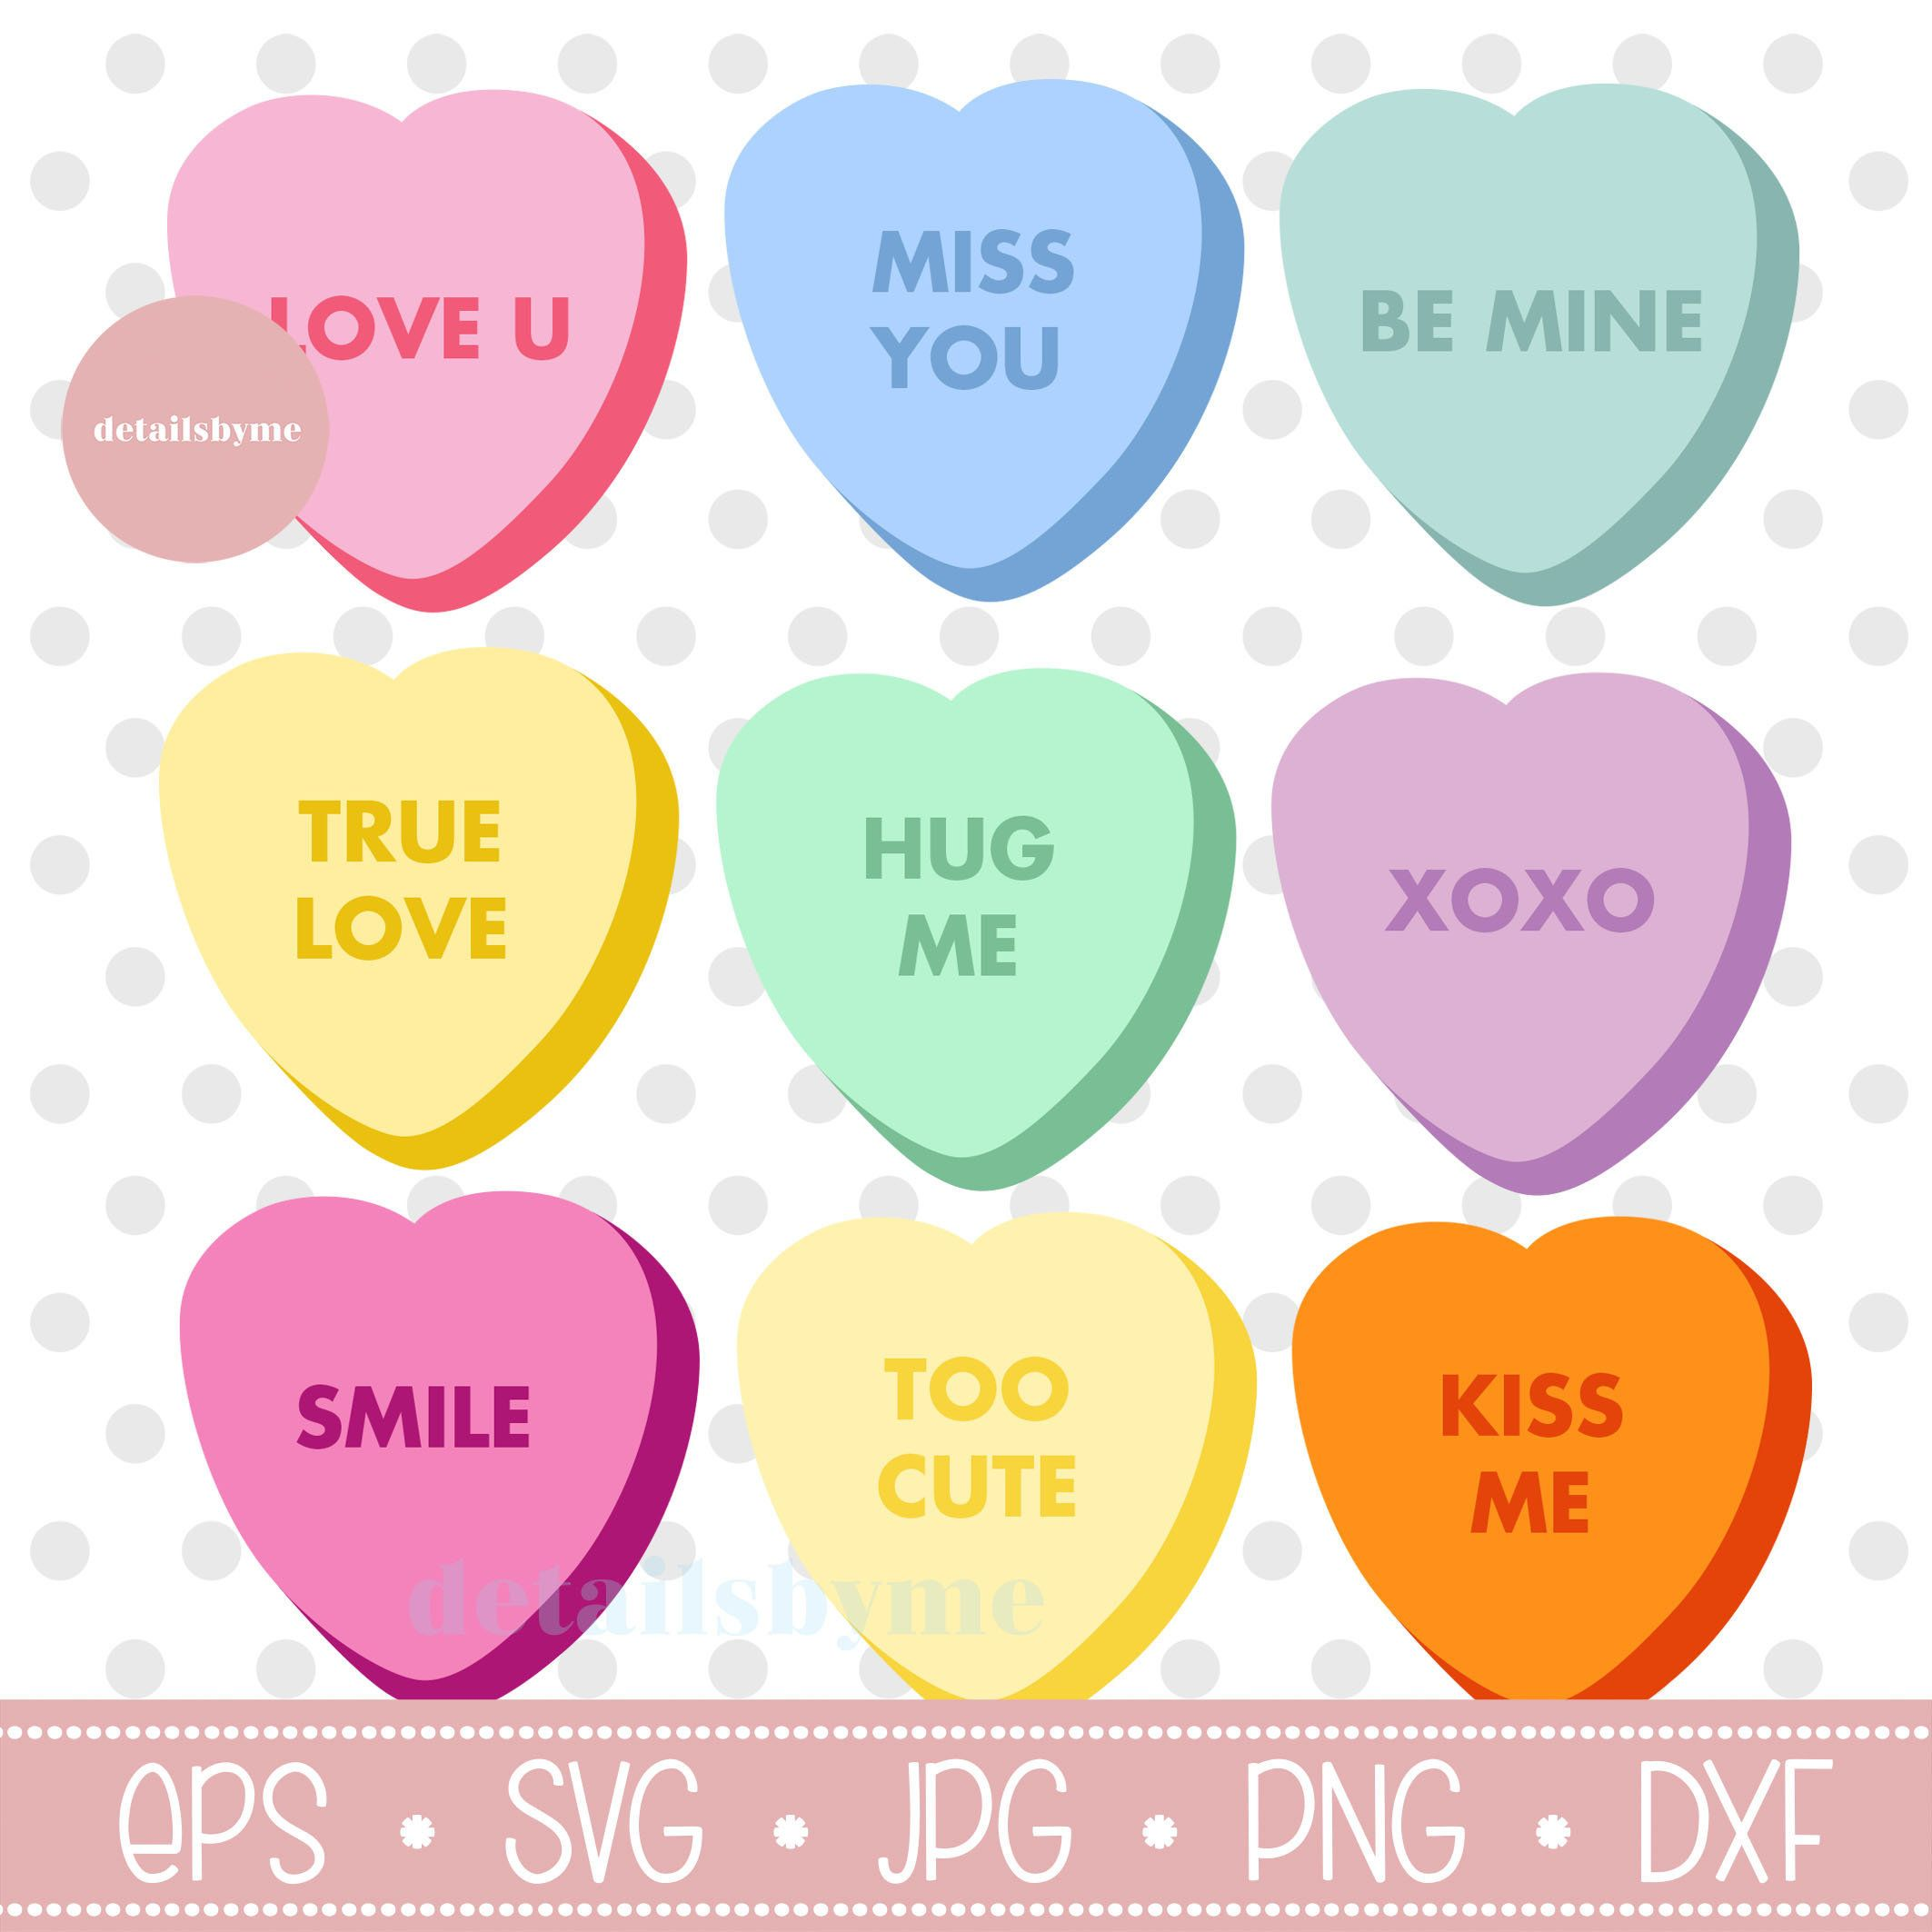 Conversation Hearts Svg Candy Hearts Svg Valentines Day Svg Etsy In 2021 Heart Candy Balloons Text Svg